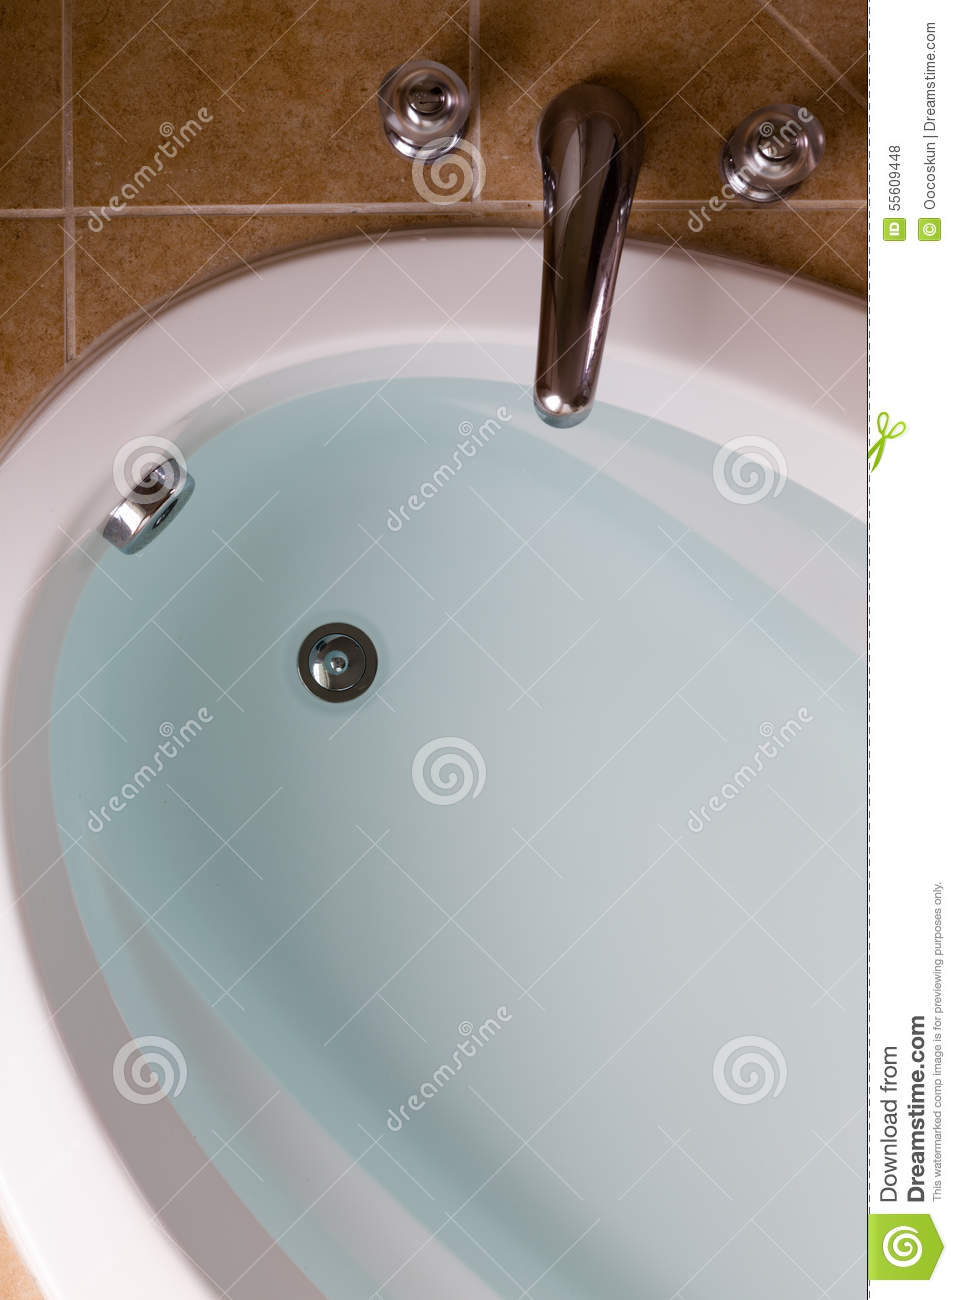 Oval Bathtub Full Of Clean Water Ready For A Bath Stock Photo ...